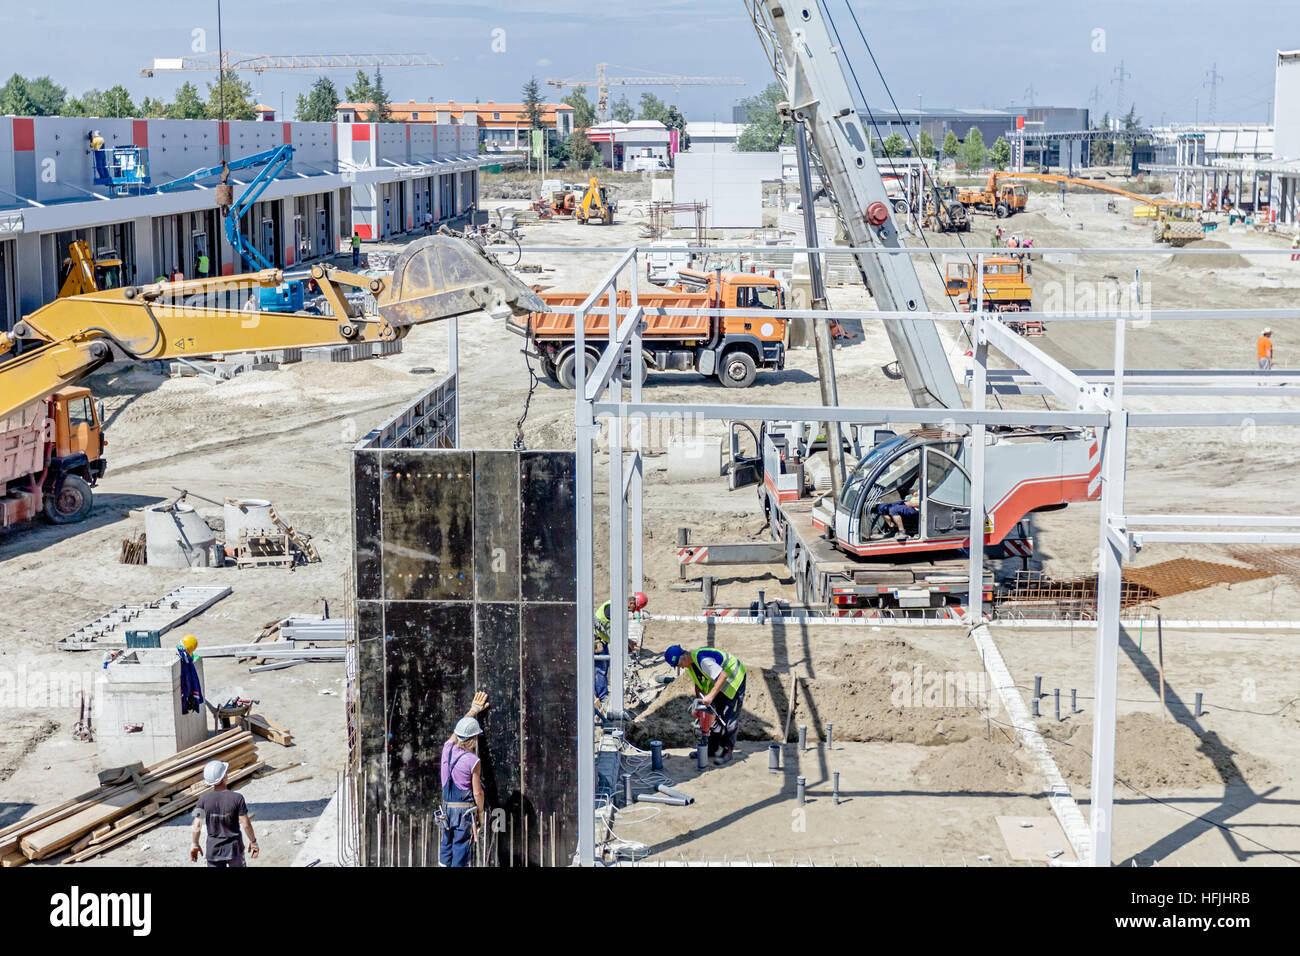 View on building site until workers are assembly a huge mold for concreting. Stock Photo